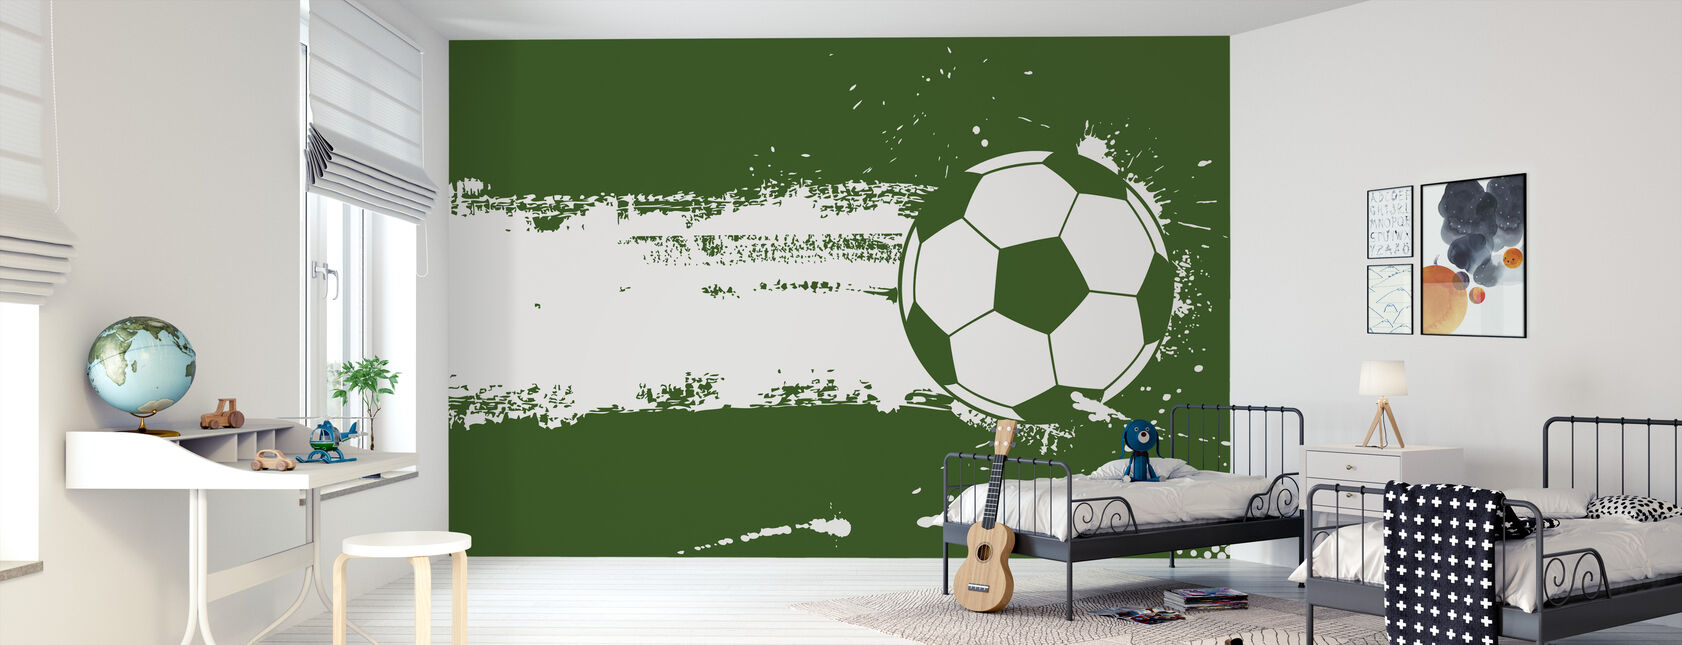 Green Soccer - Wallpaper - Kids Room